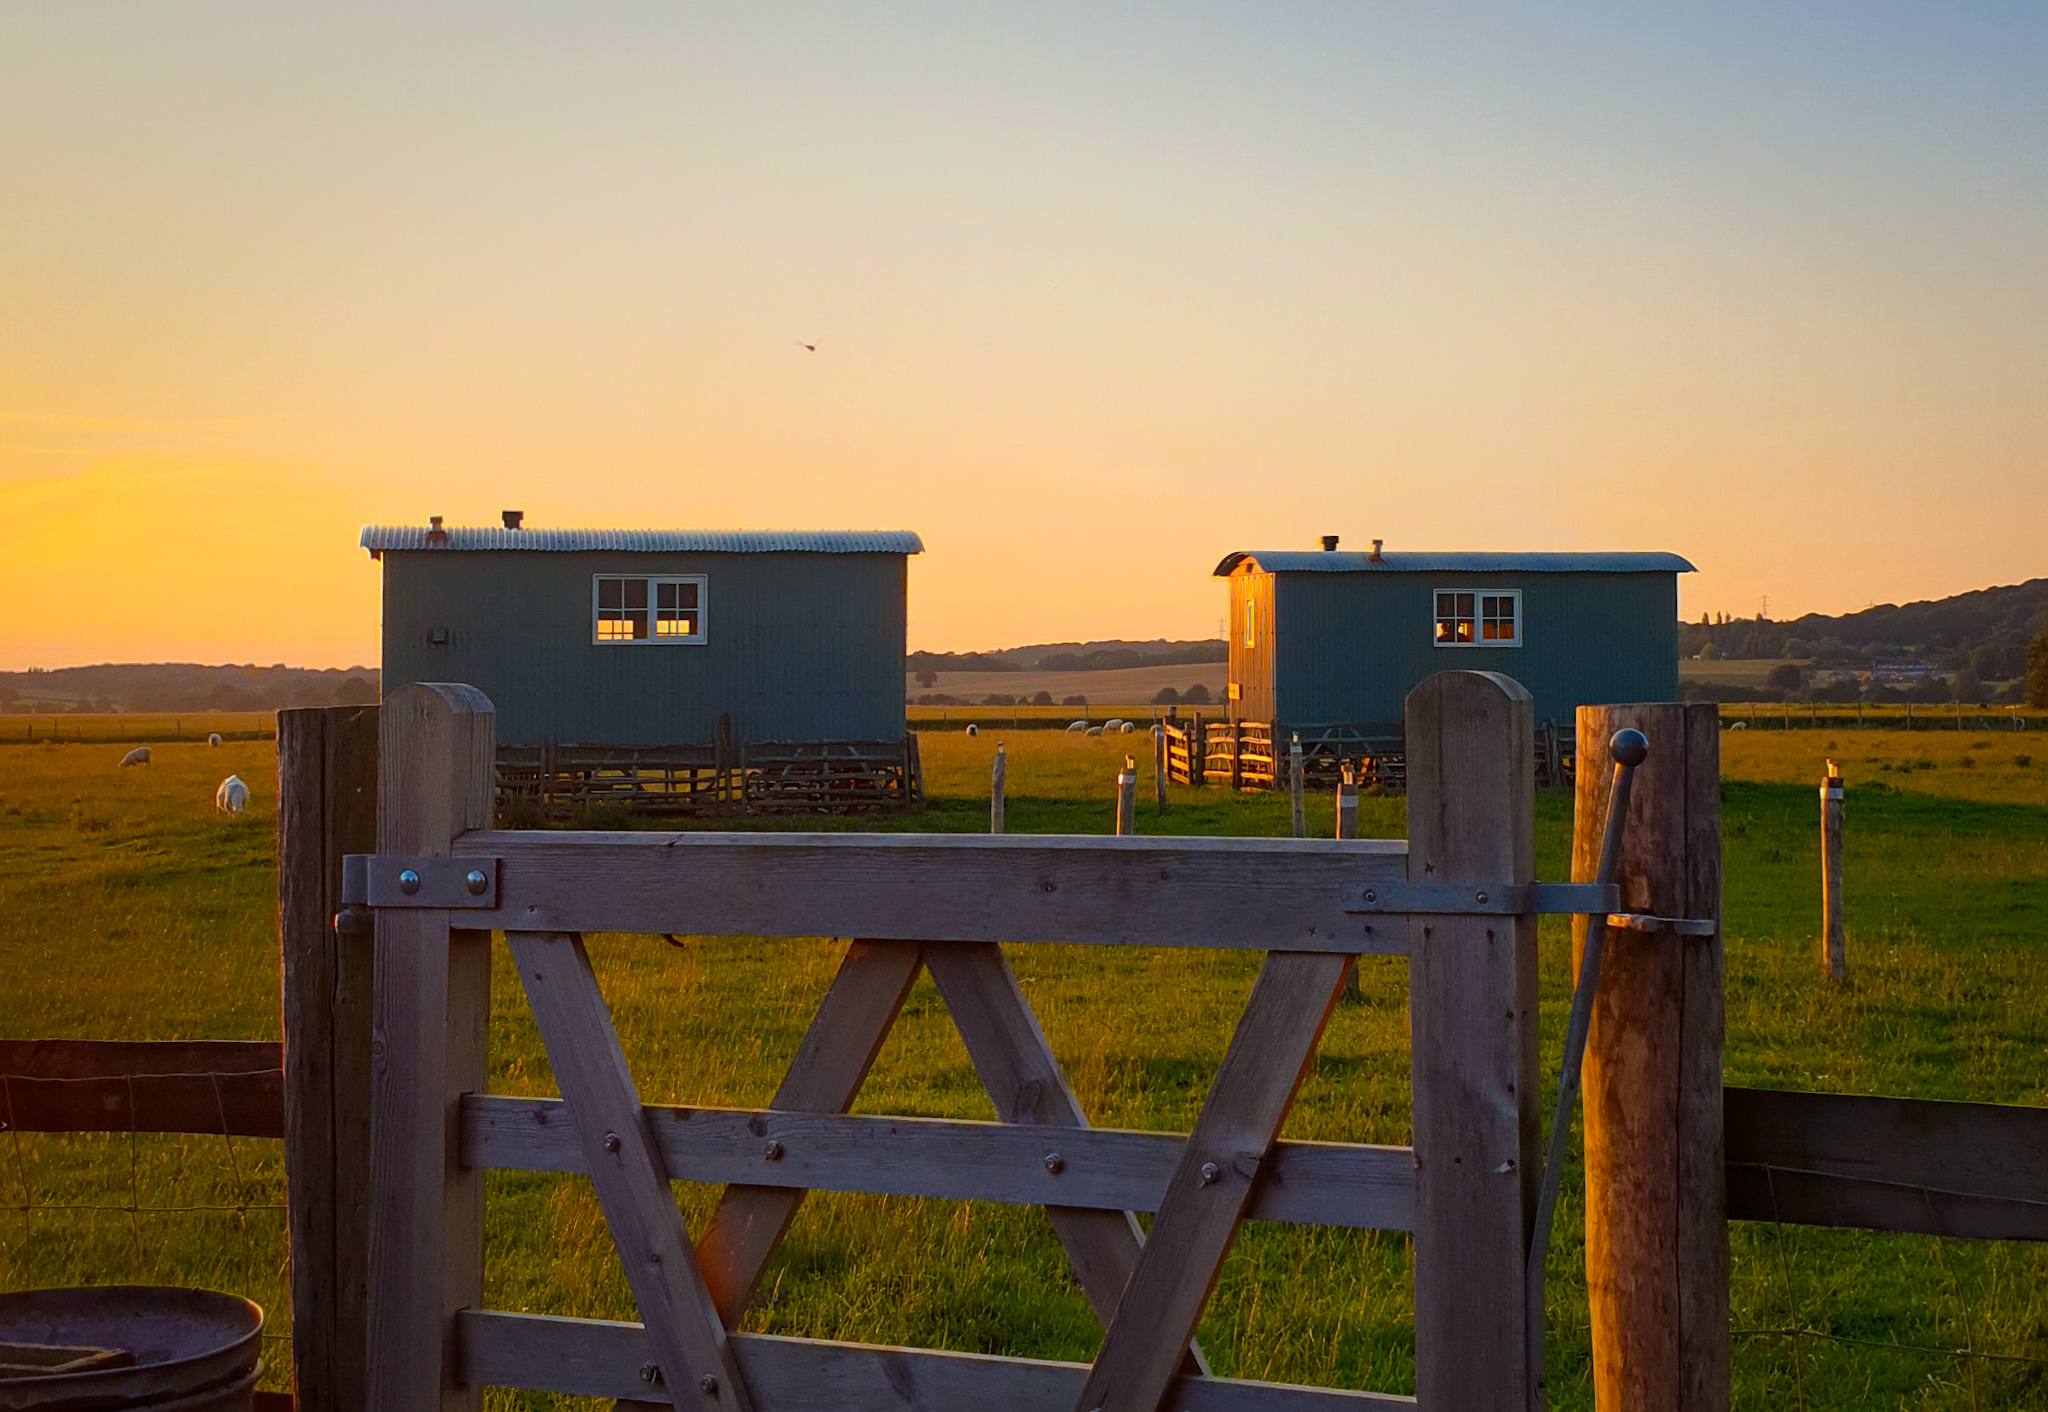 House-of-Coco-Romney-Marsh-Osagiede-36